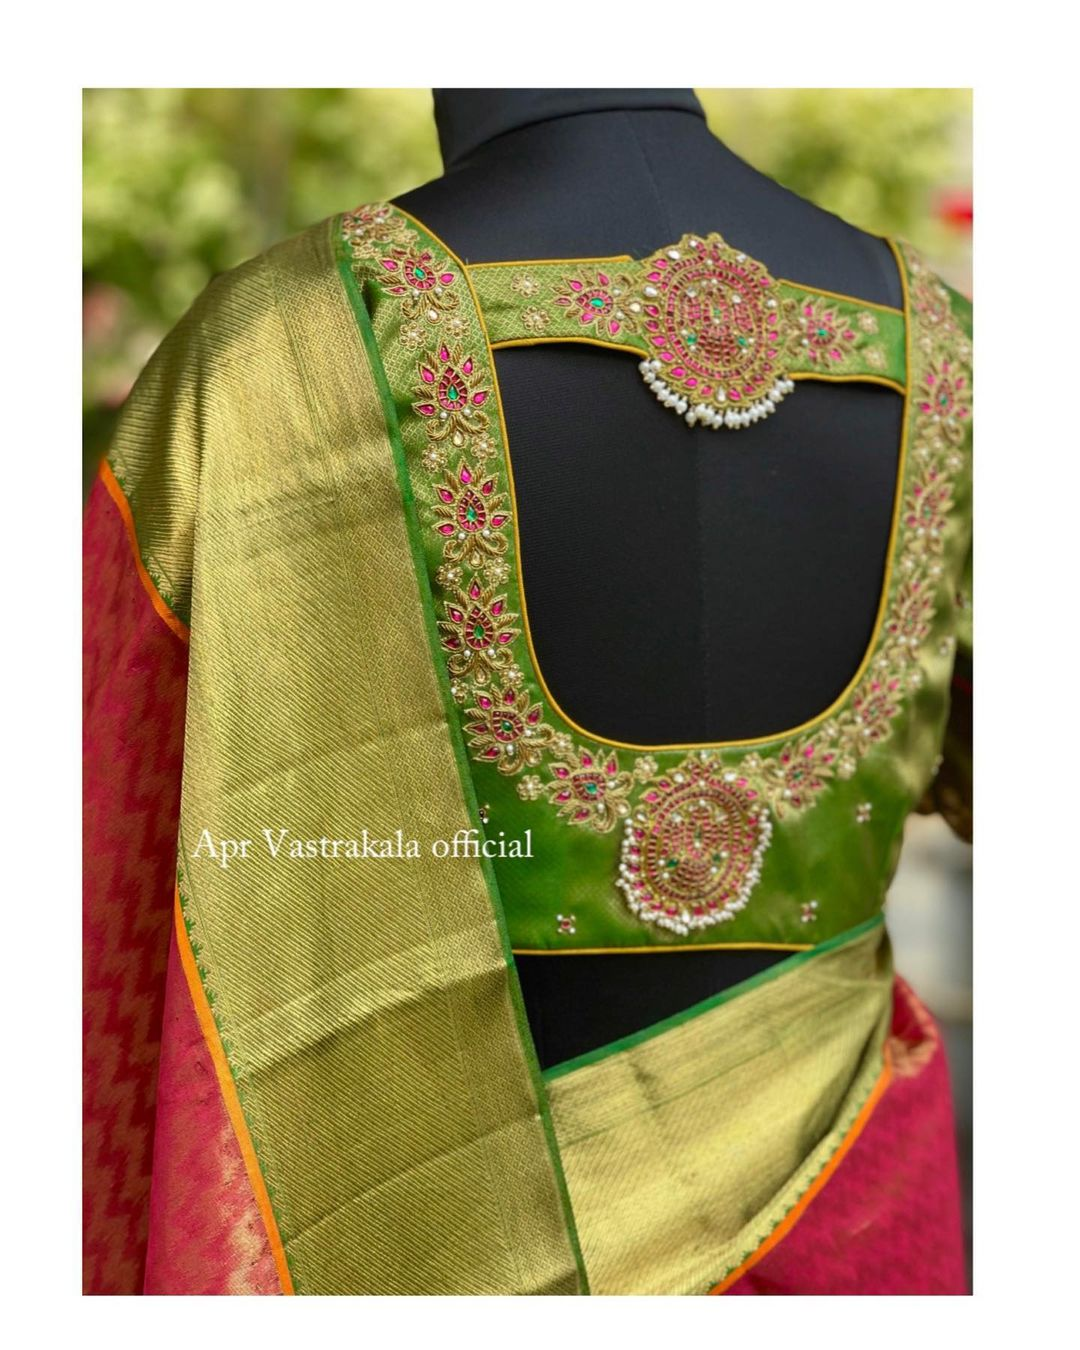 all time classics . Mix and match your sarees with a jewel work blouse. 2021-09-04